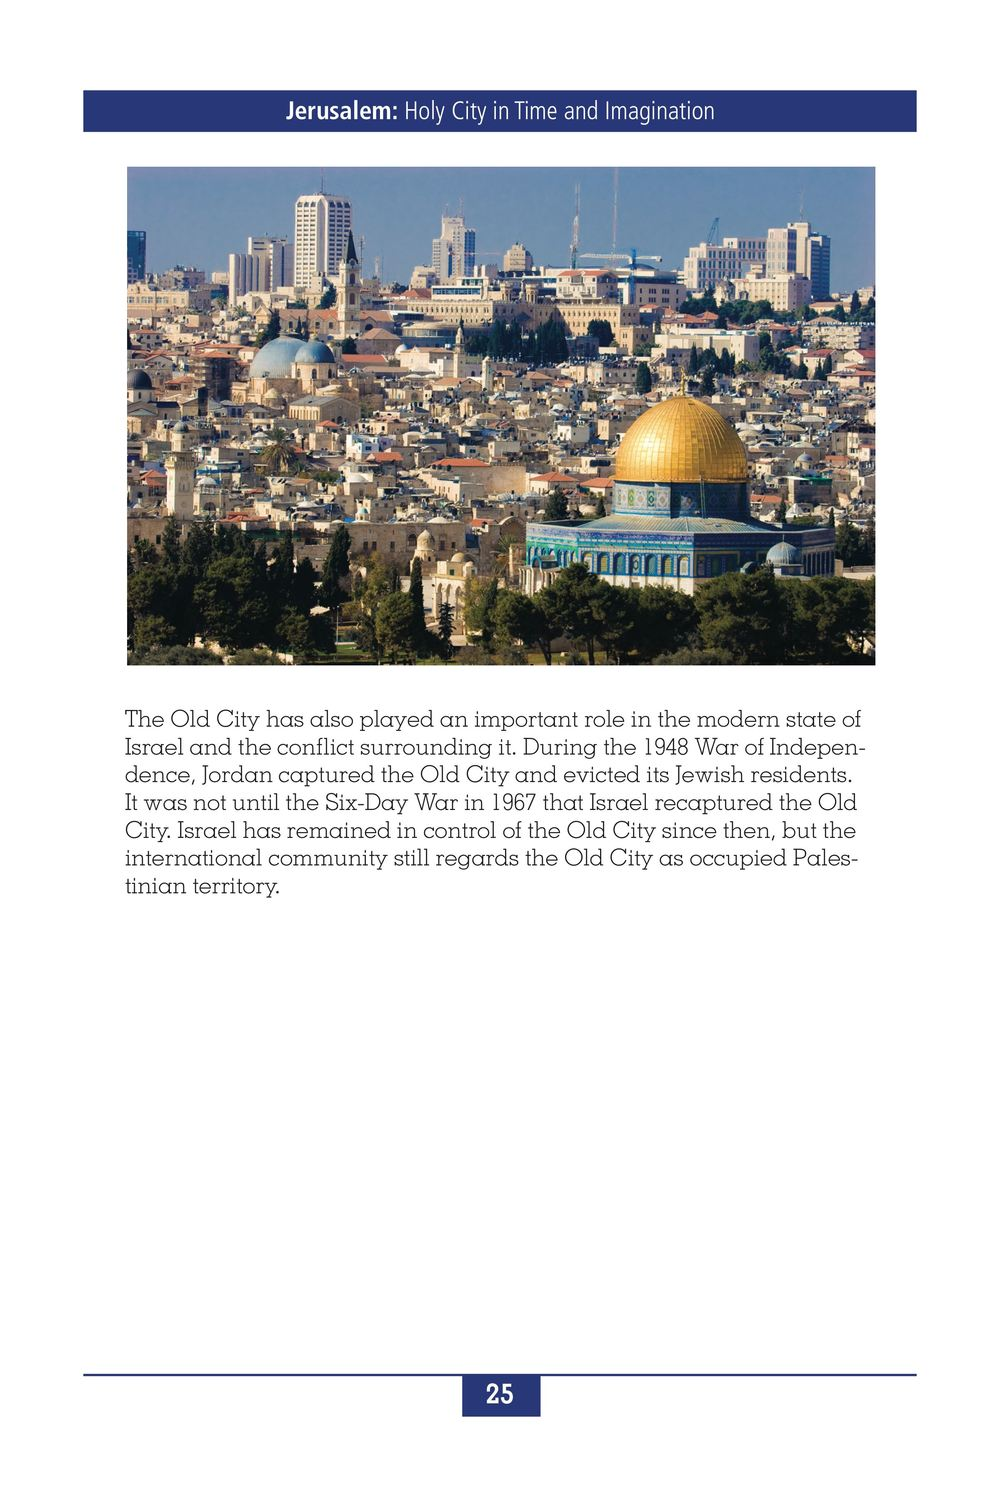 Rice Jerusalum Travel Book final-029.jpg